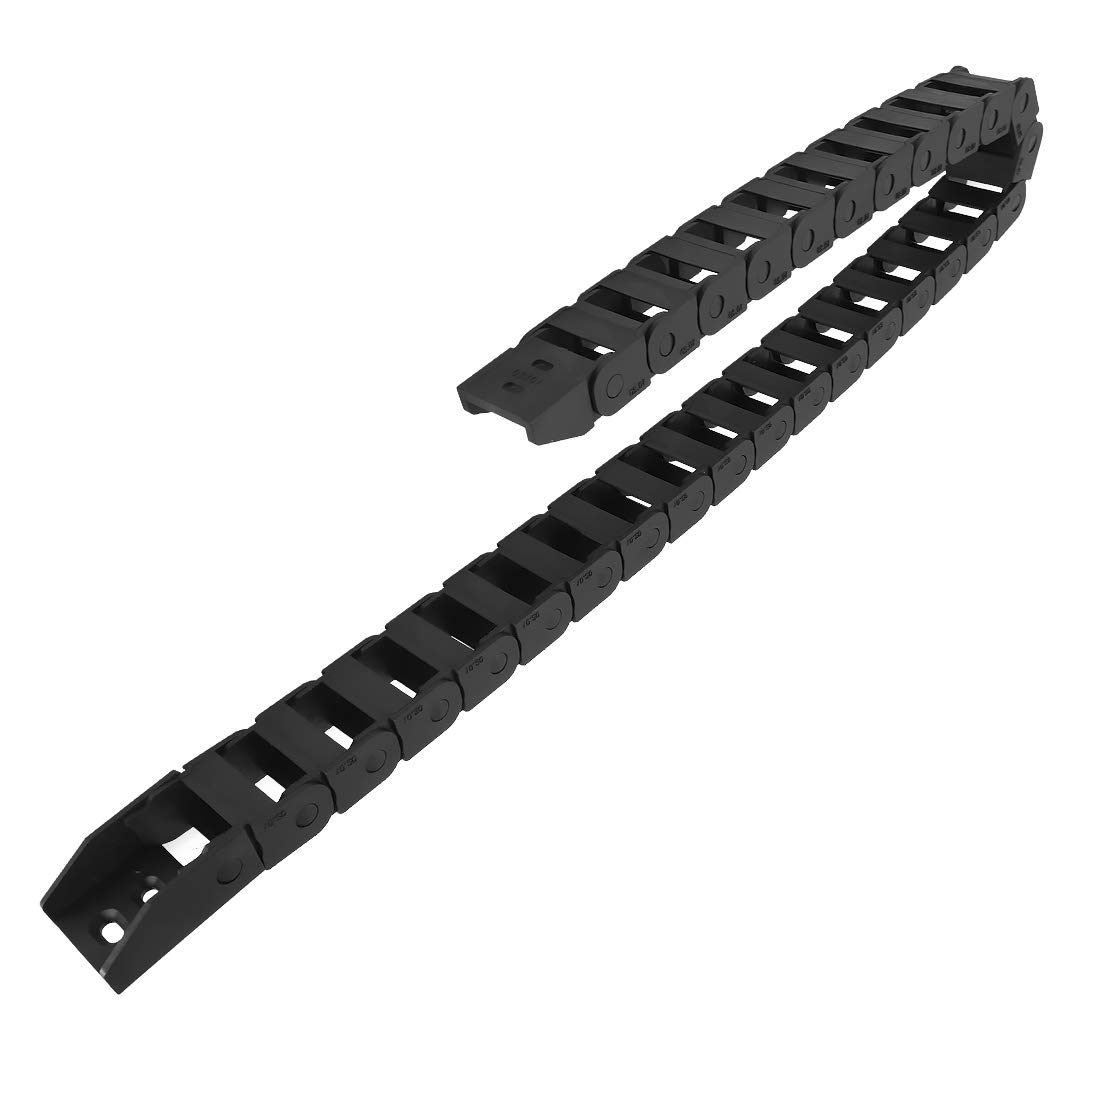 LMioEtool R18 10mm x 10mm Black Plastic Cable Wire Carrier Drag Chain 1M Length for CNC, with End Connectors - Bridge Type (Non-openable)